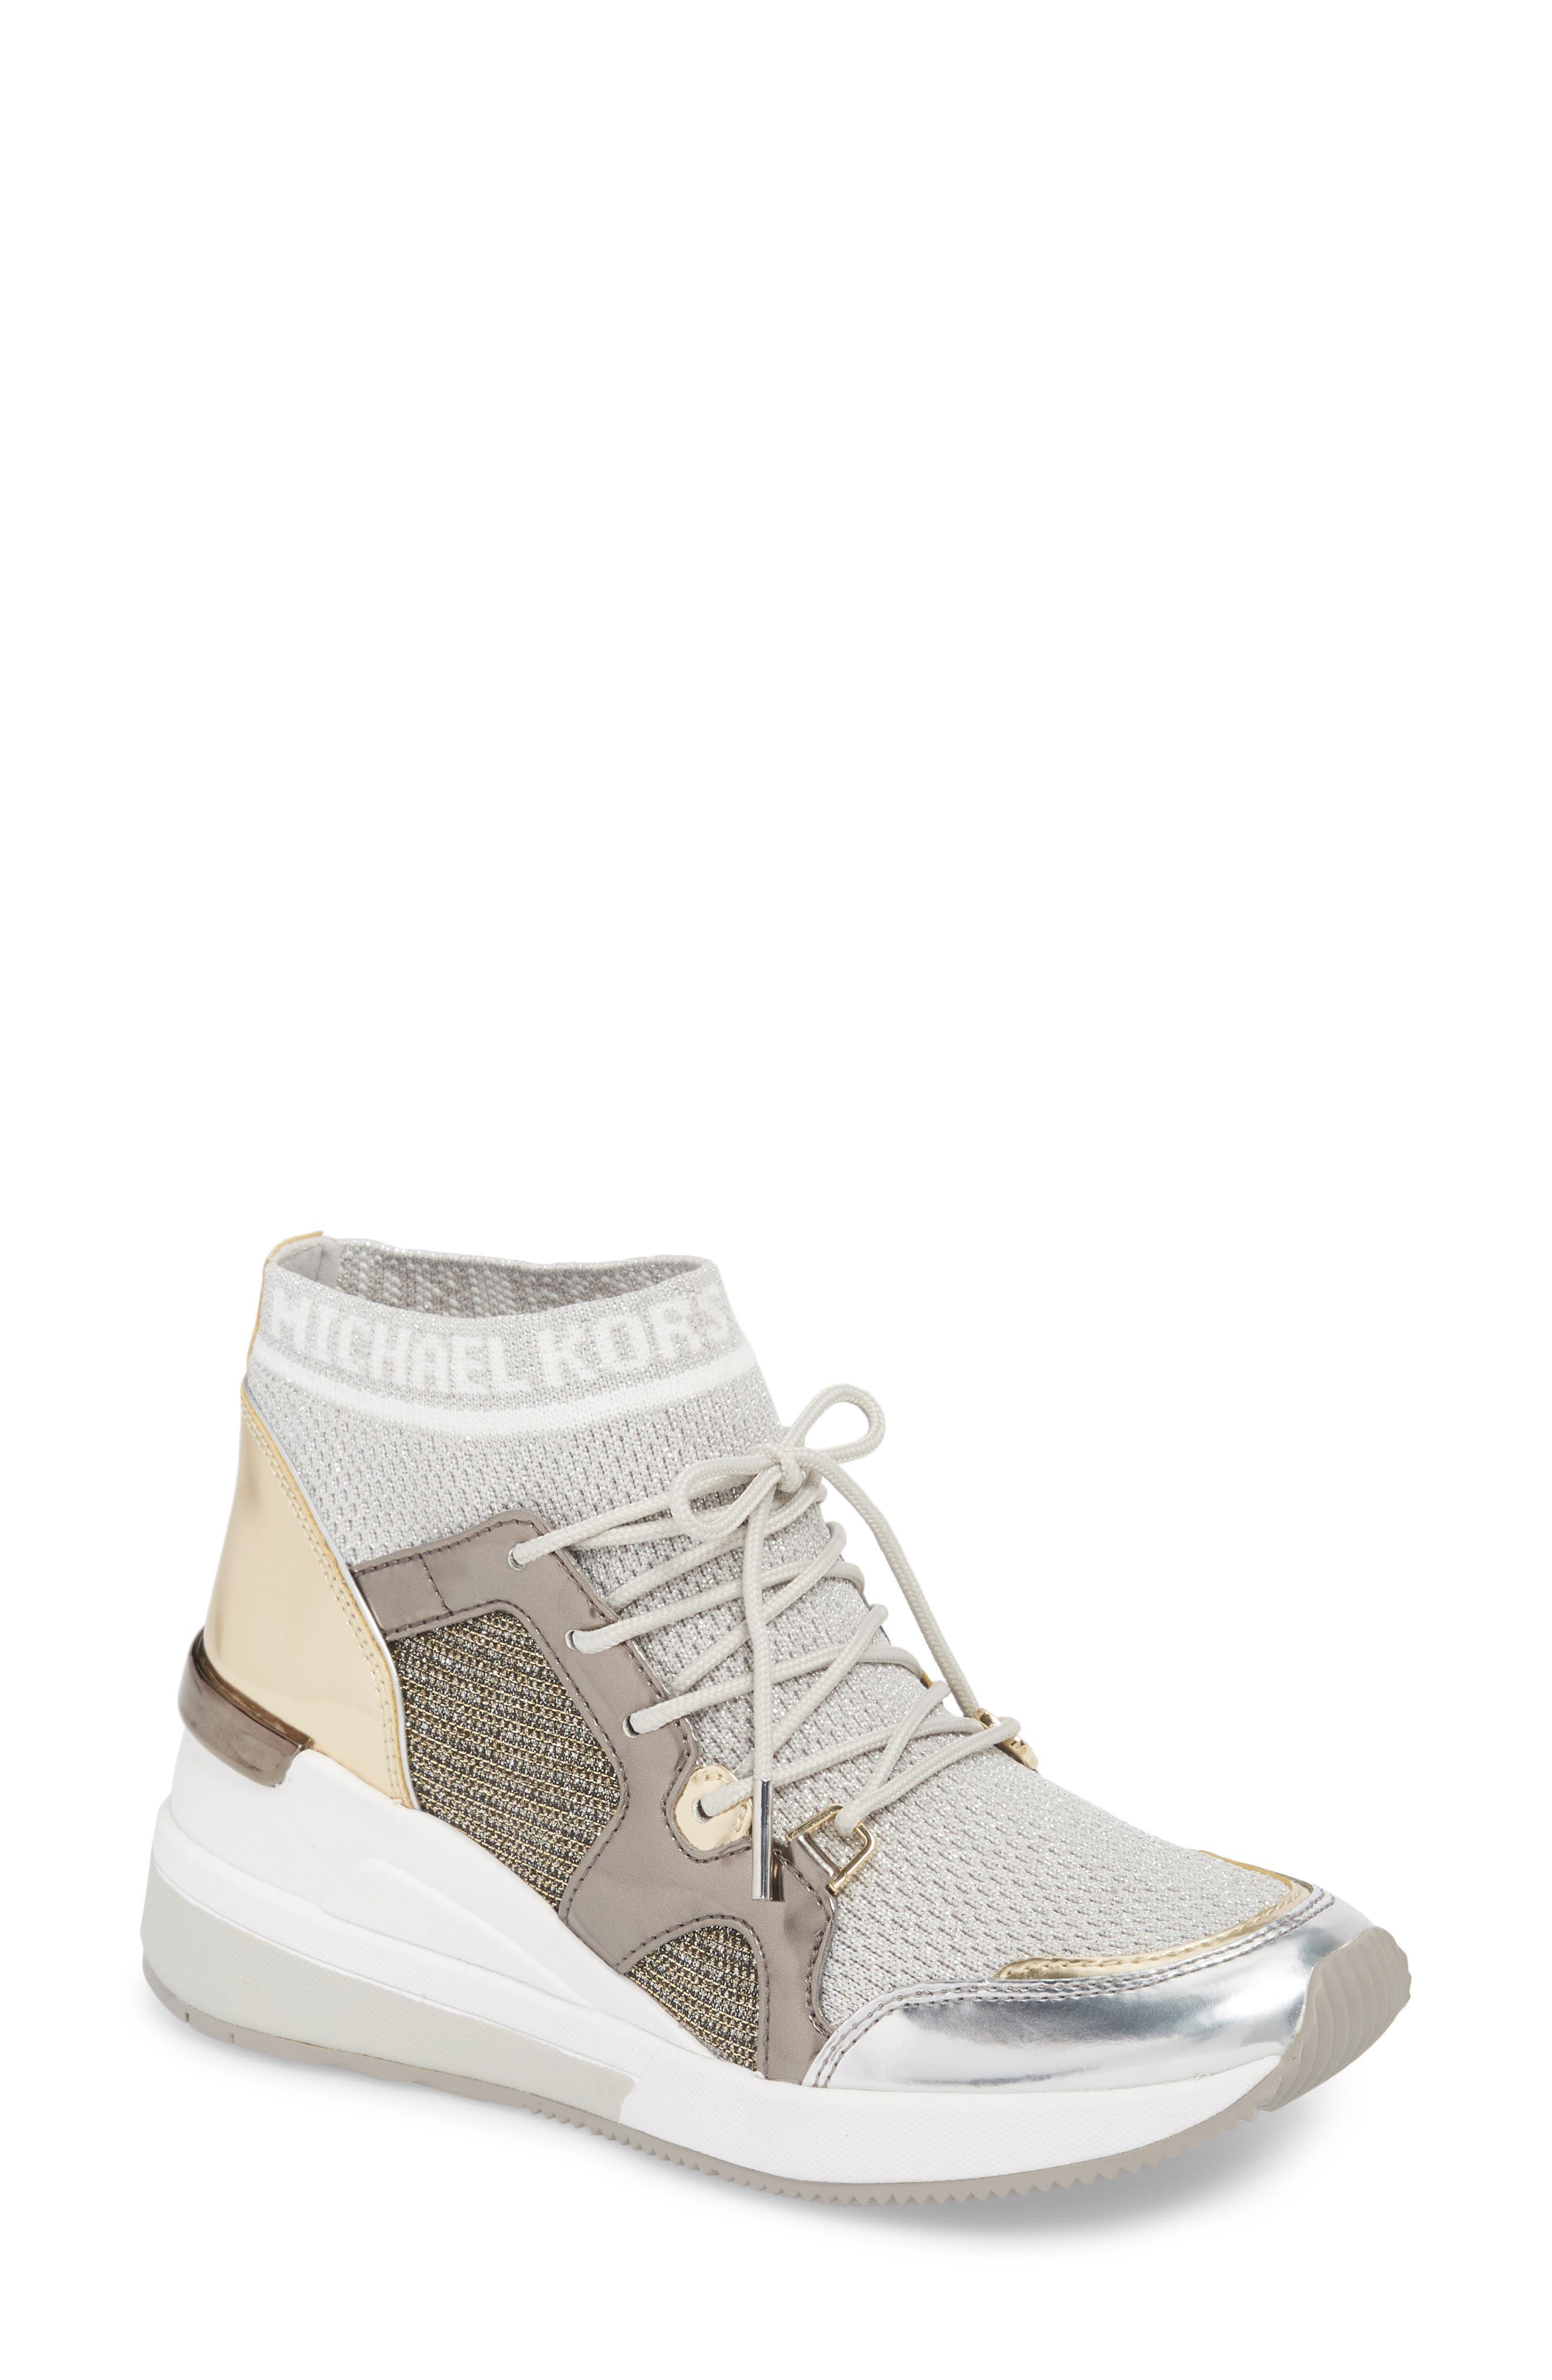 Hilda Wedge Sneaker,                         Main,                         color, Silver Knit Fabric